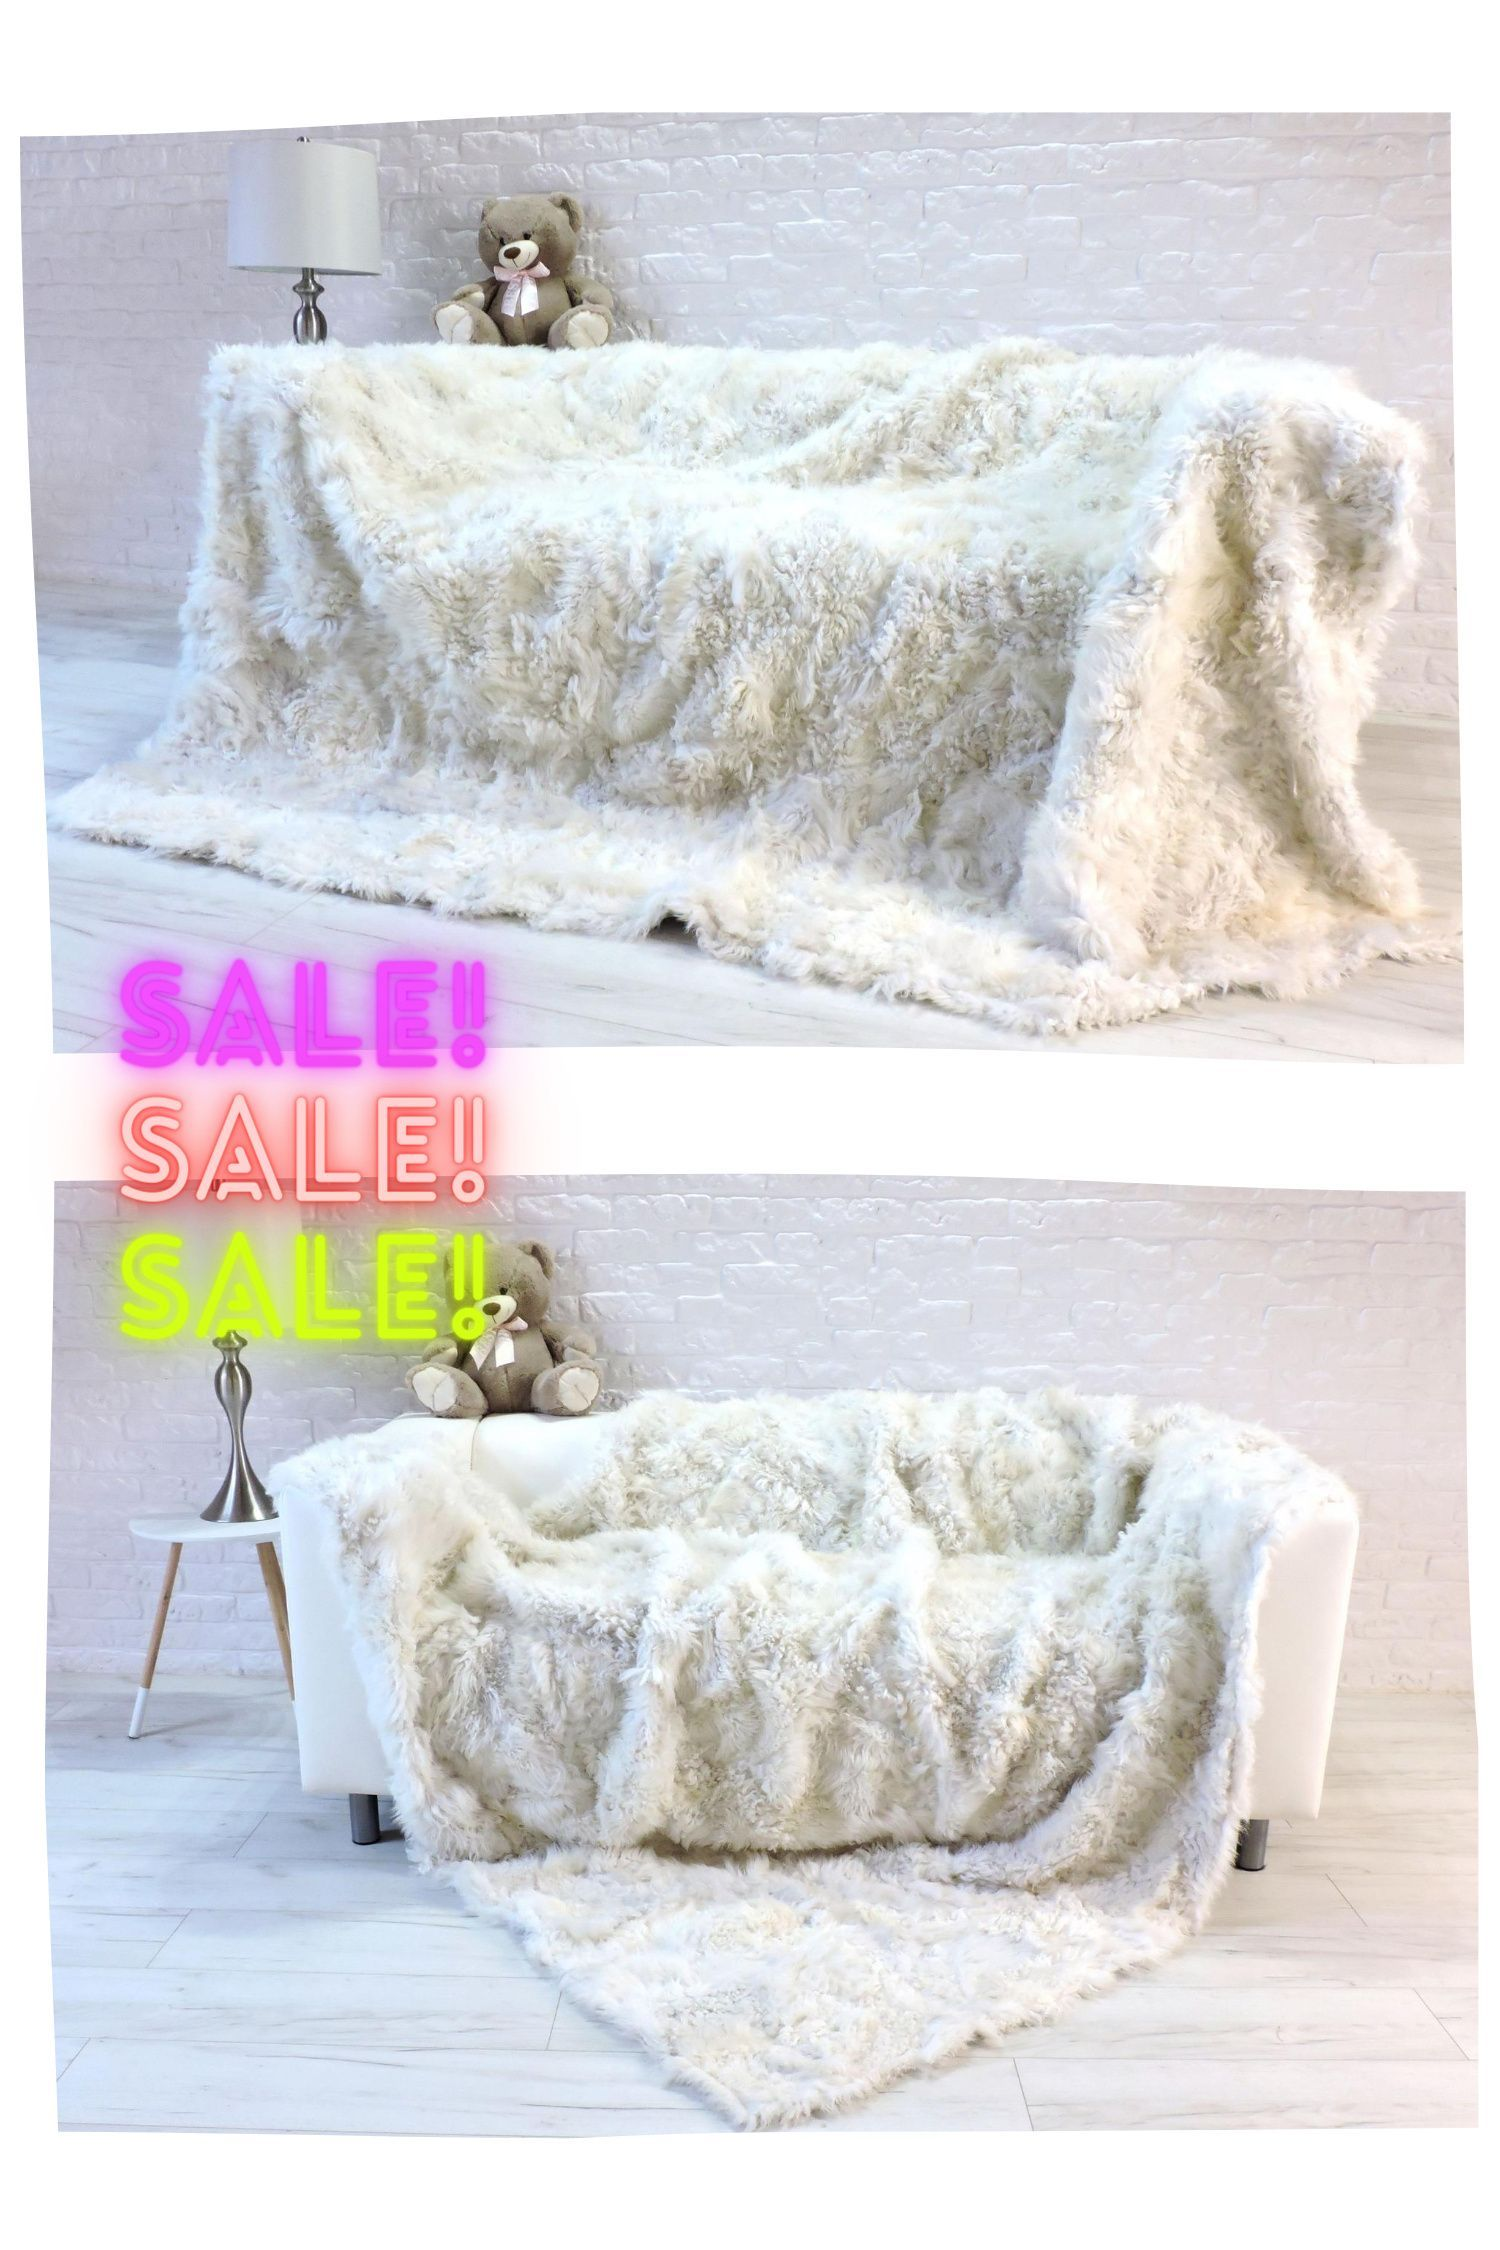 Real Toscana Fur Throw Real Fur Blanket White Fur Throw Sofa Cover Fur Rug King Size Fur Throw Lambskin Sofa Cover Sofa Throw 411 In 2020 Fur Blanket Fur Throw Lambskin Rug